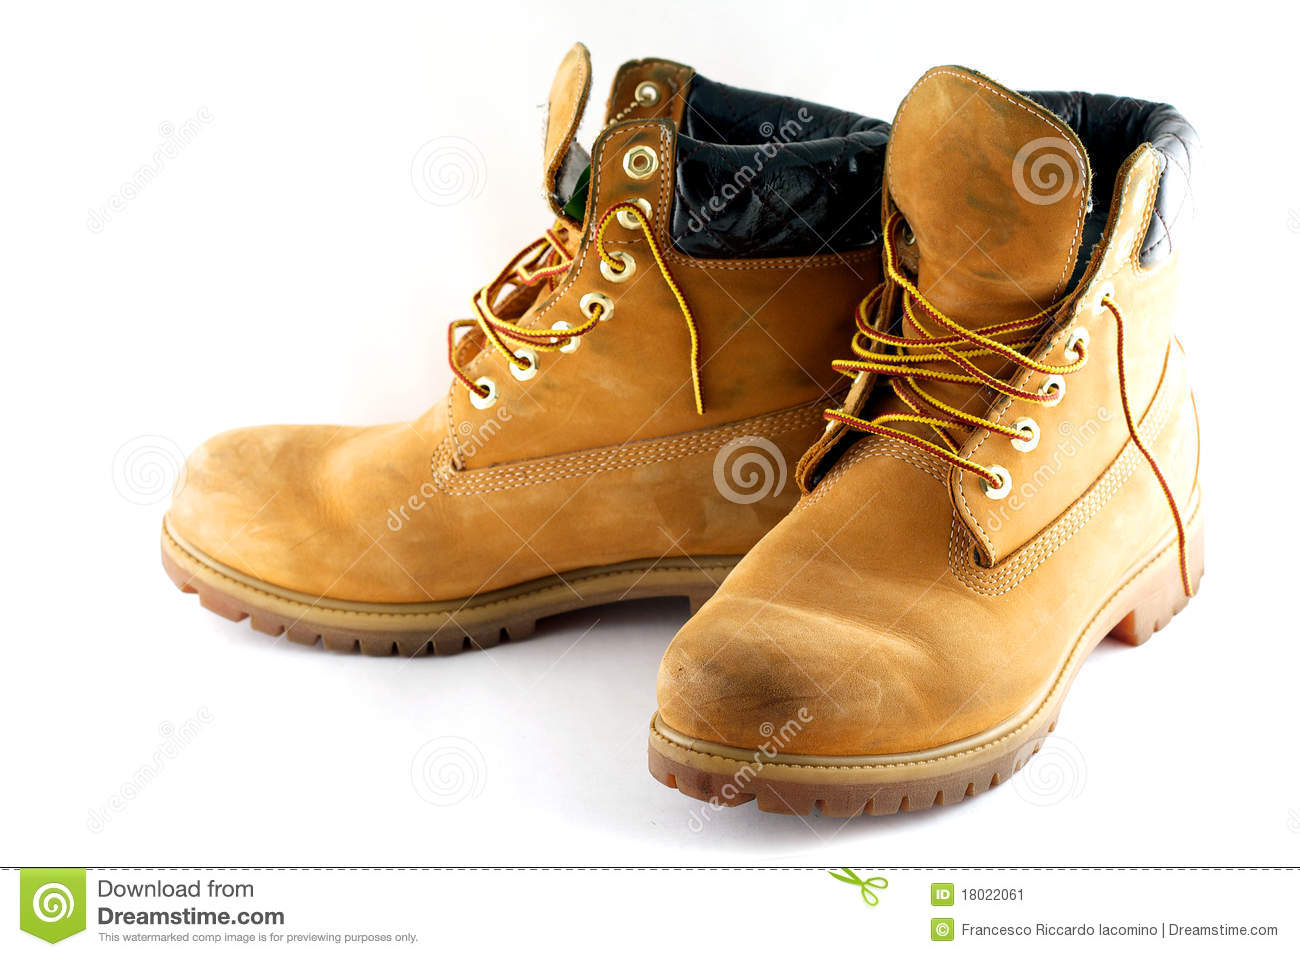 Best Time To Buy Fashion Boots